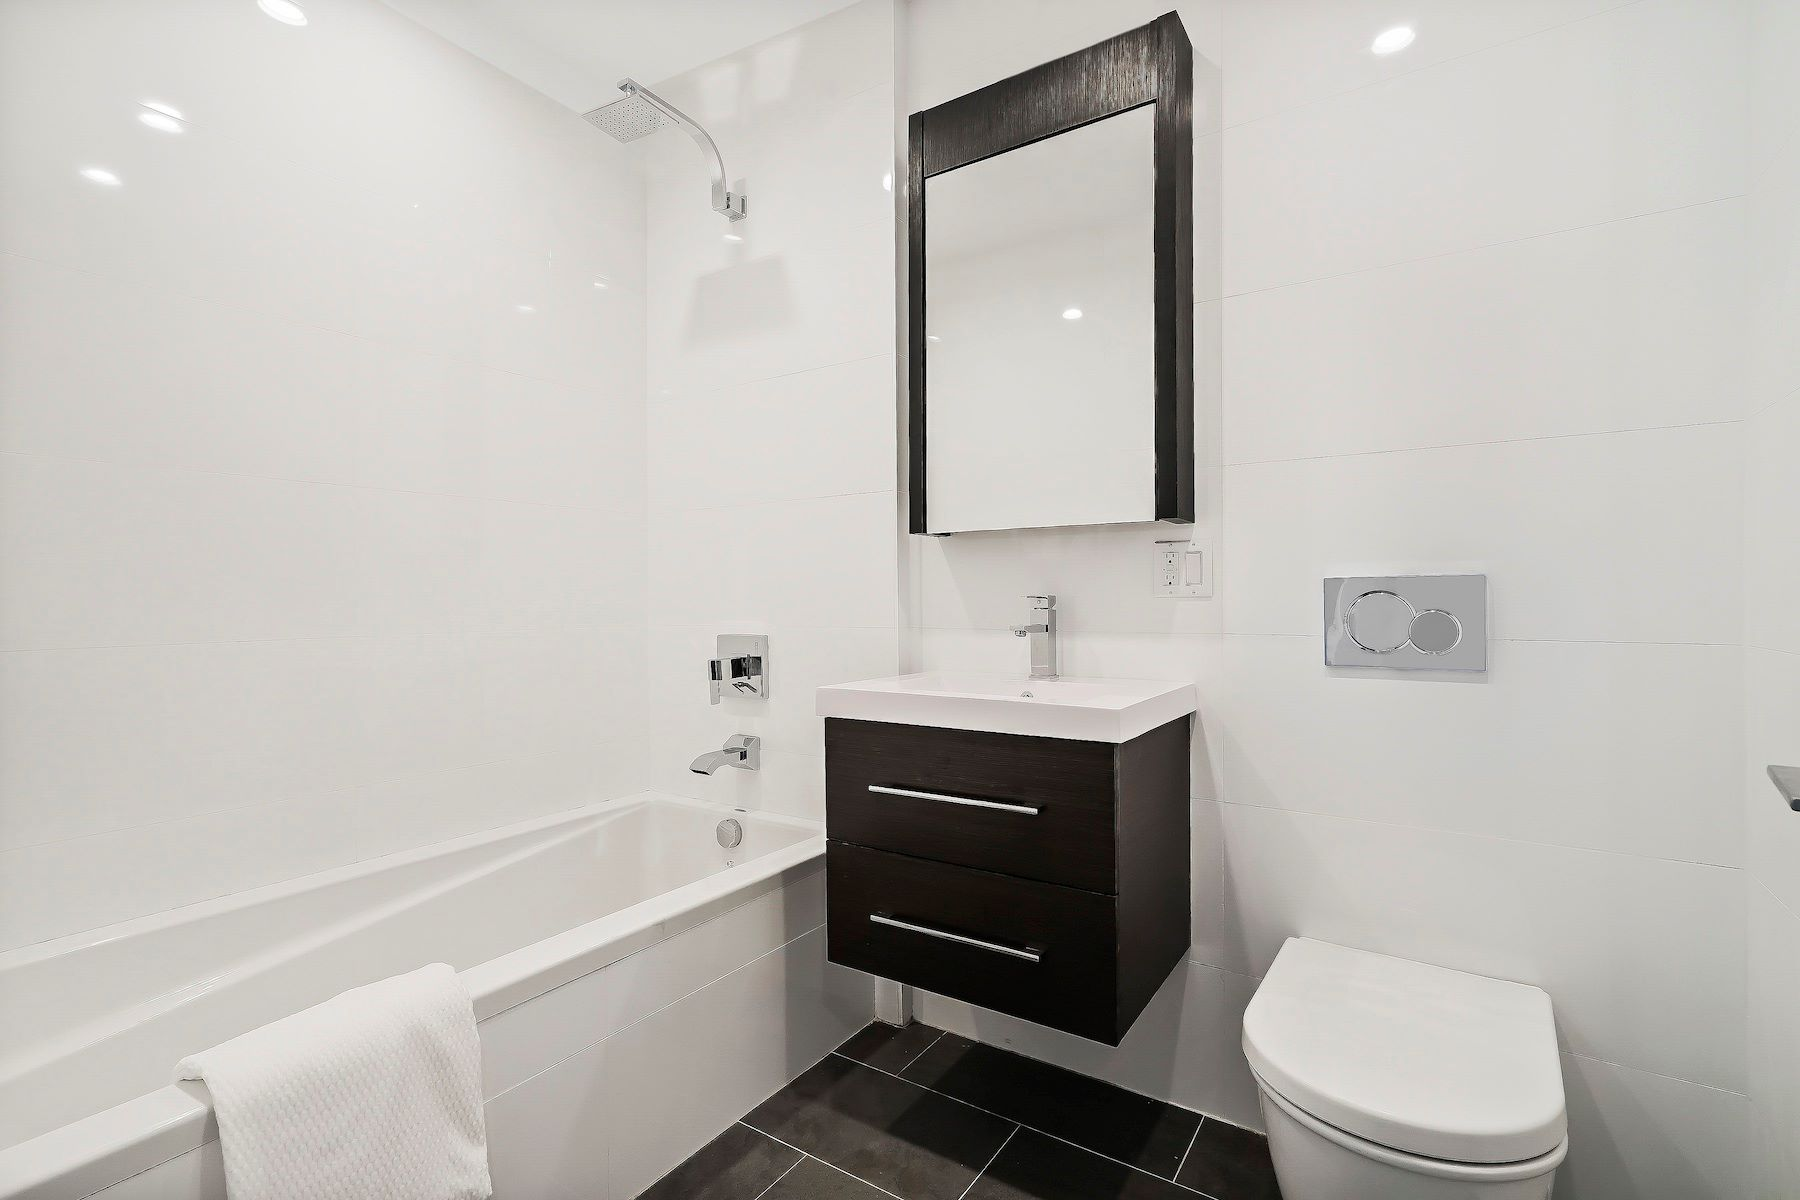 Additional photo for property listing at Stanton on Sixth 695 6th Avenue 1F Brooklyn, New York 11215 United States